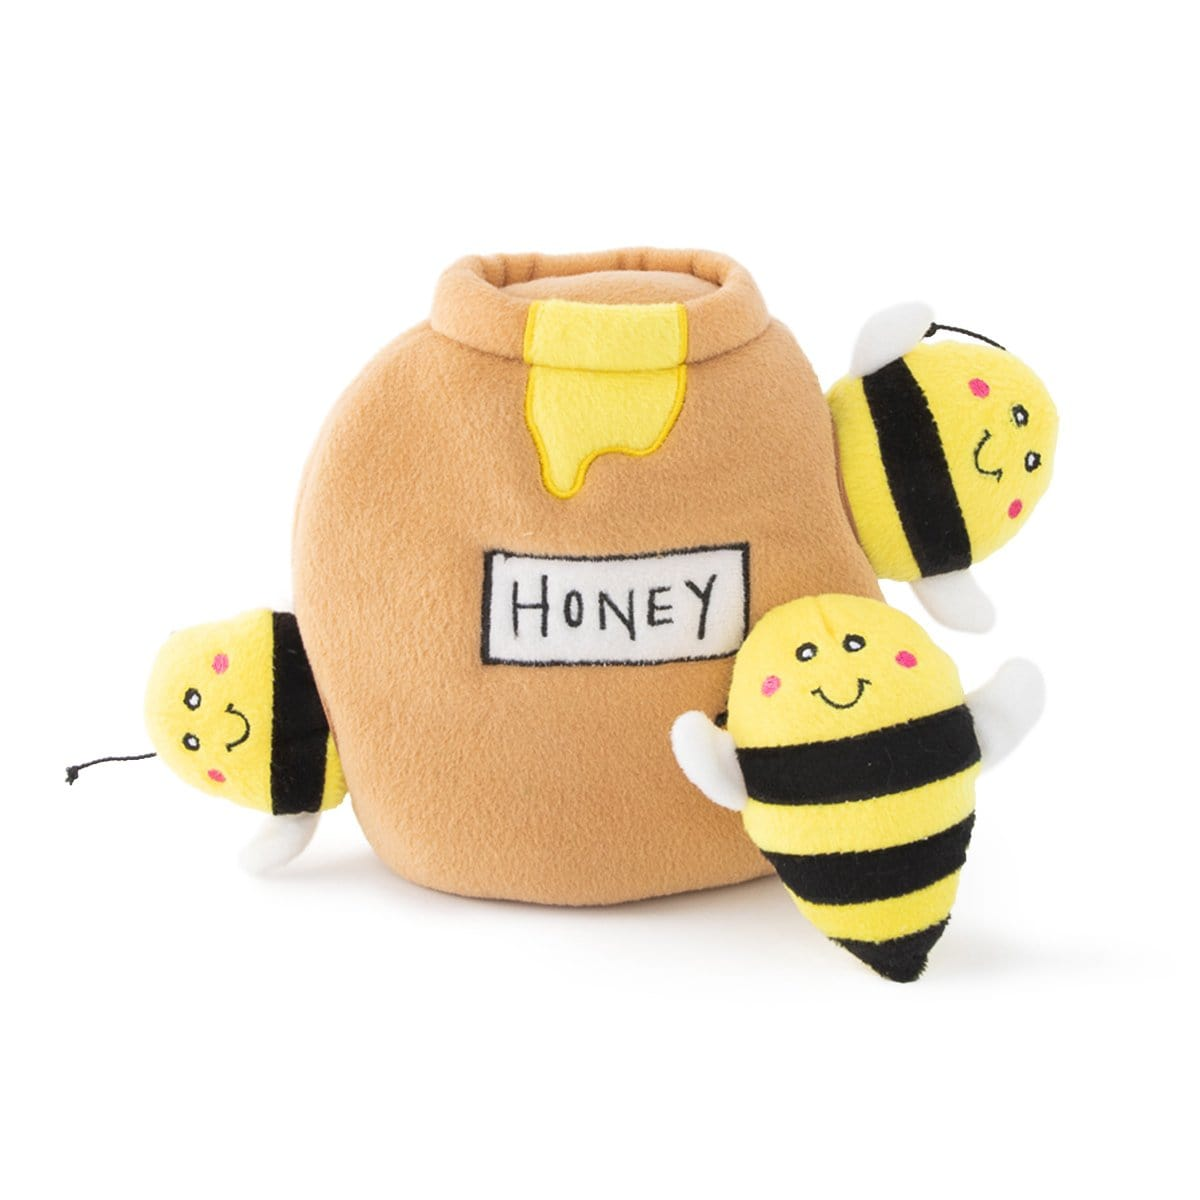 Zippy Paws Zippy Burrow - Honey Pot Dog Toys